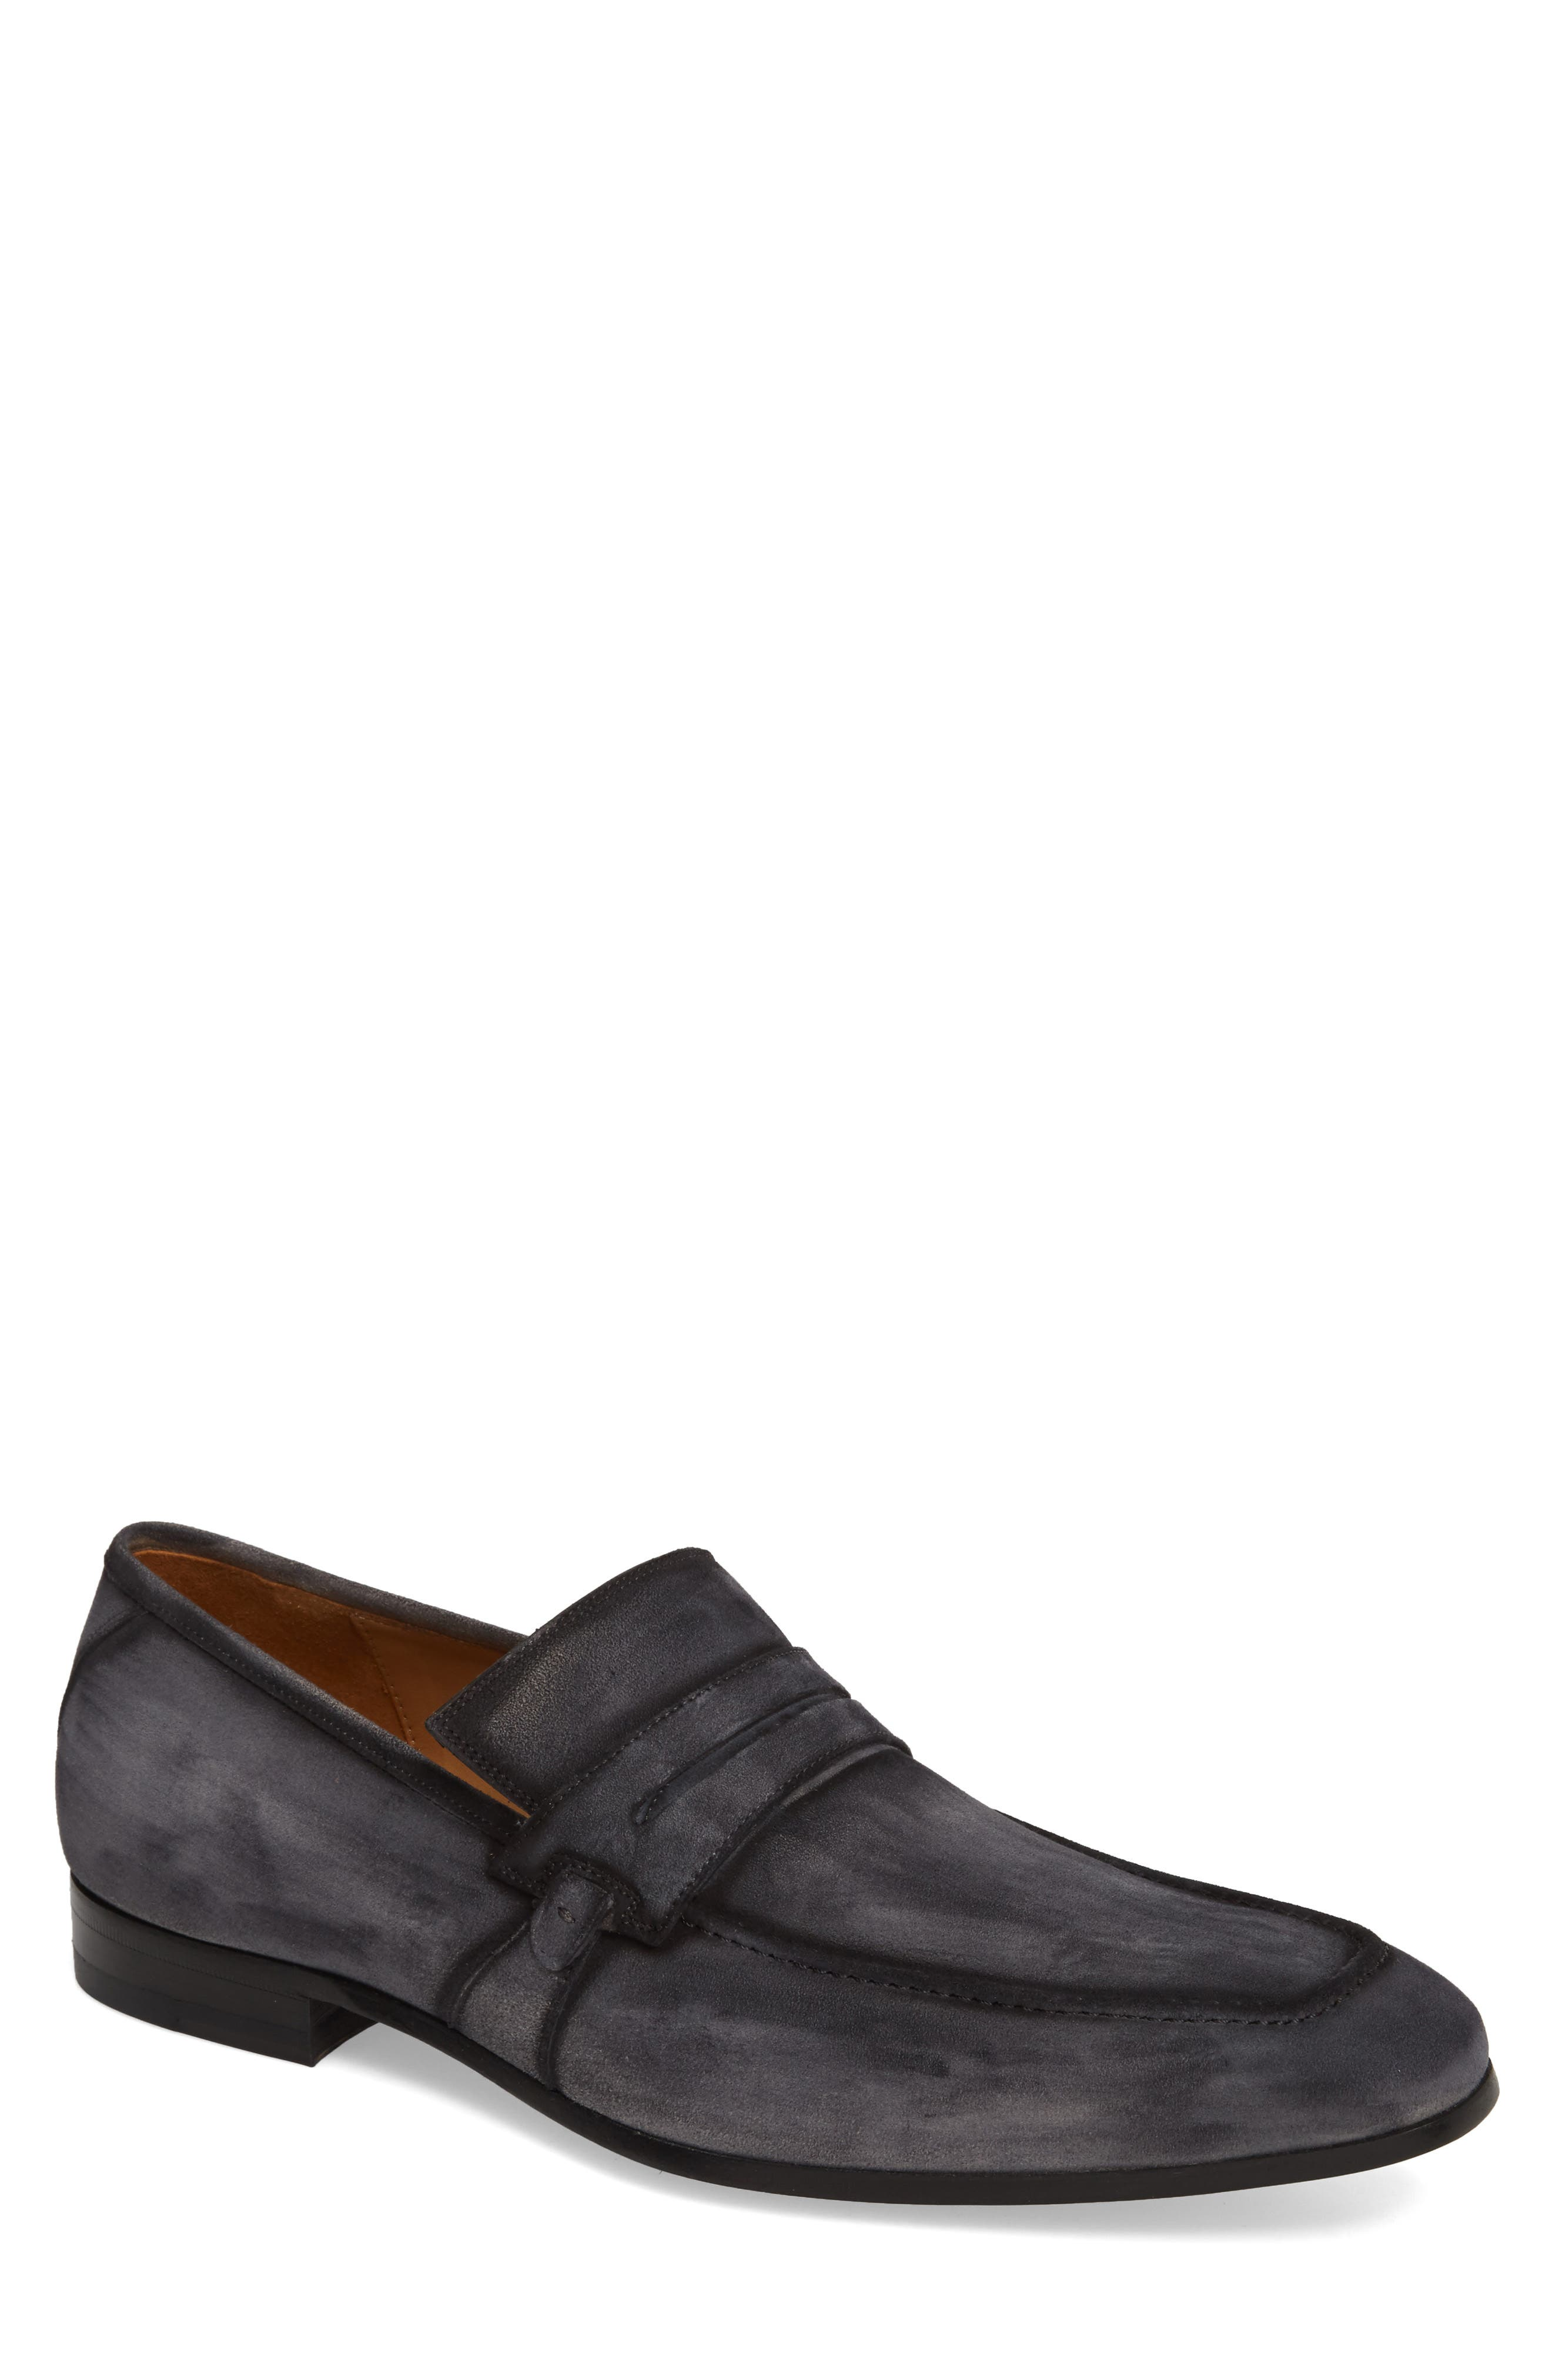 Ulpio Apron Toe Penny Loafer,                             Main thumbnail 1, color,                             LIGHT GREY SUEDE